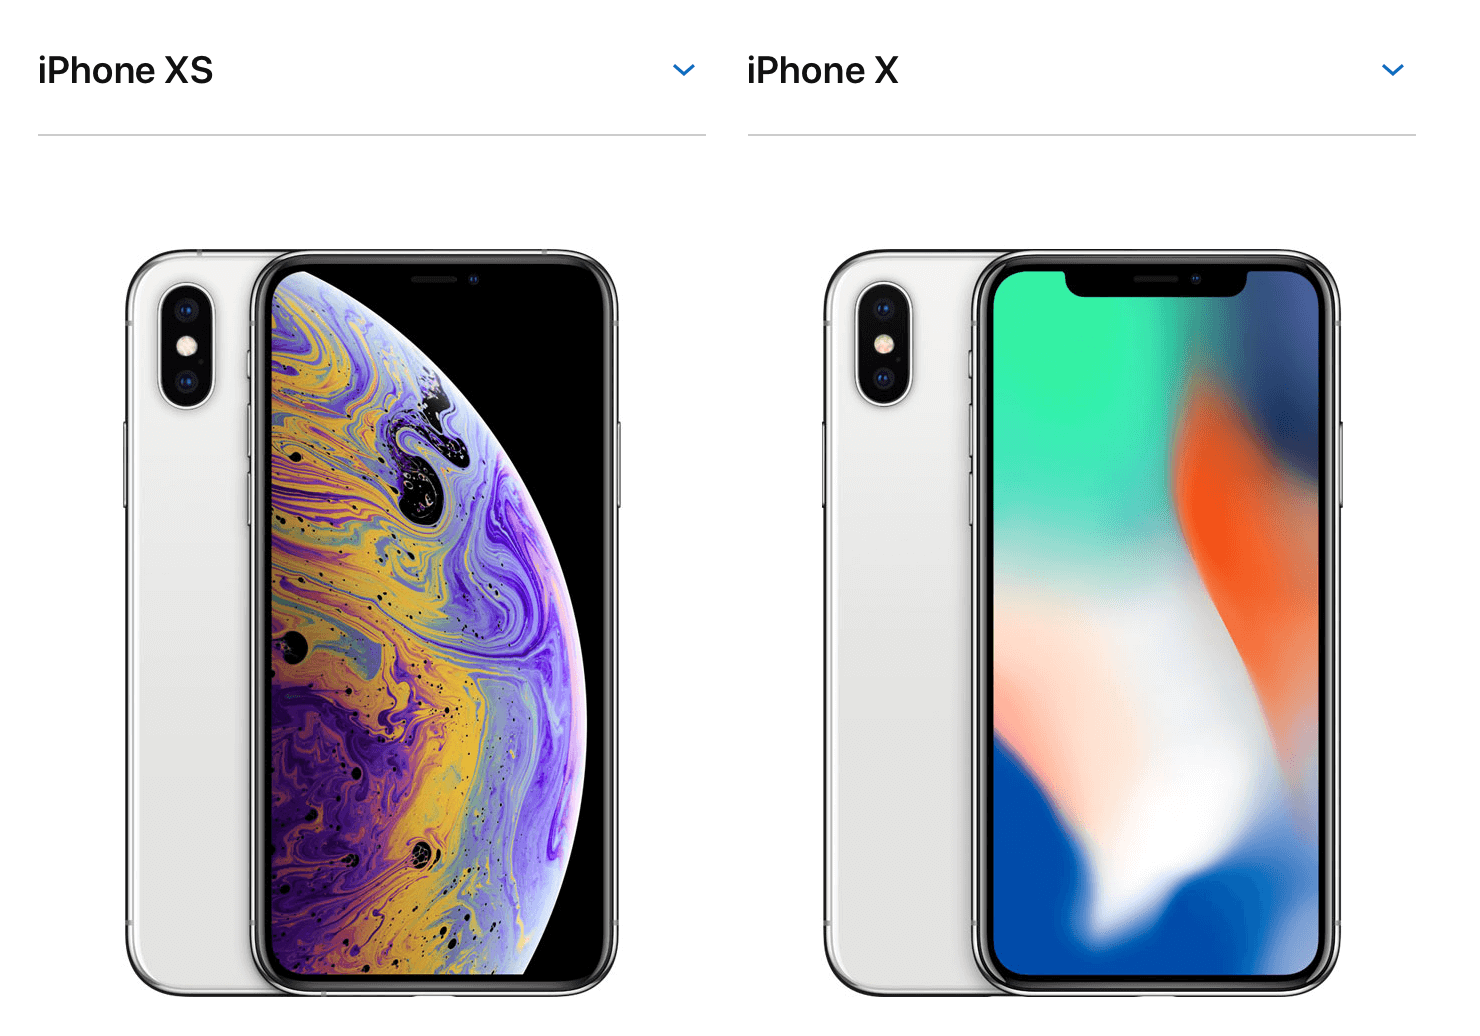 iPhone XS&iPhone X image